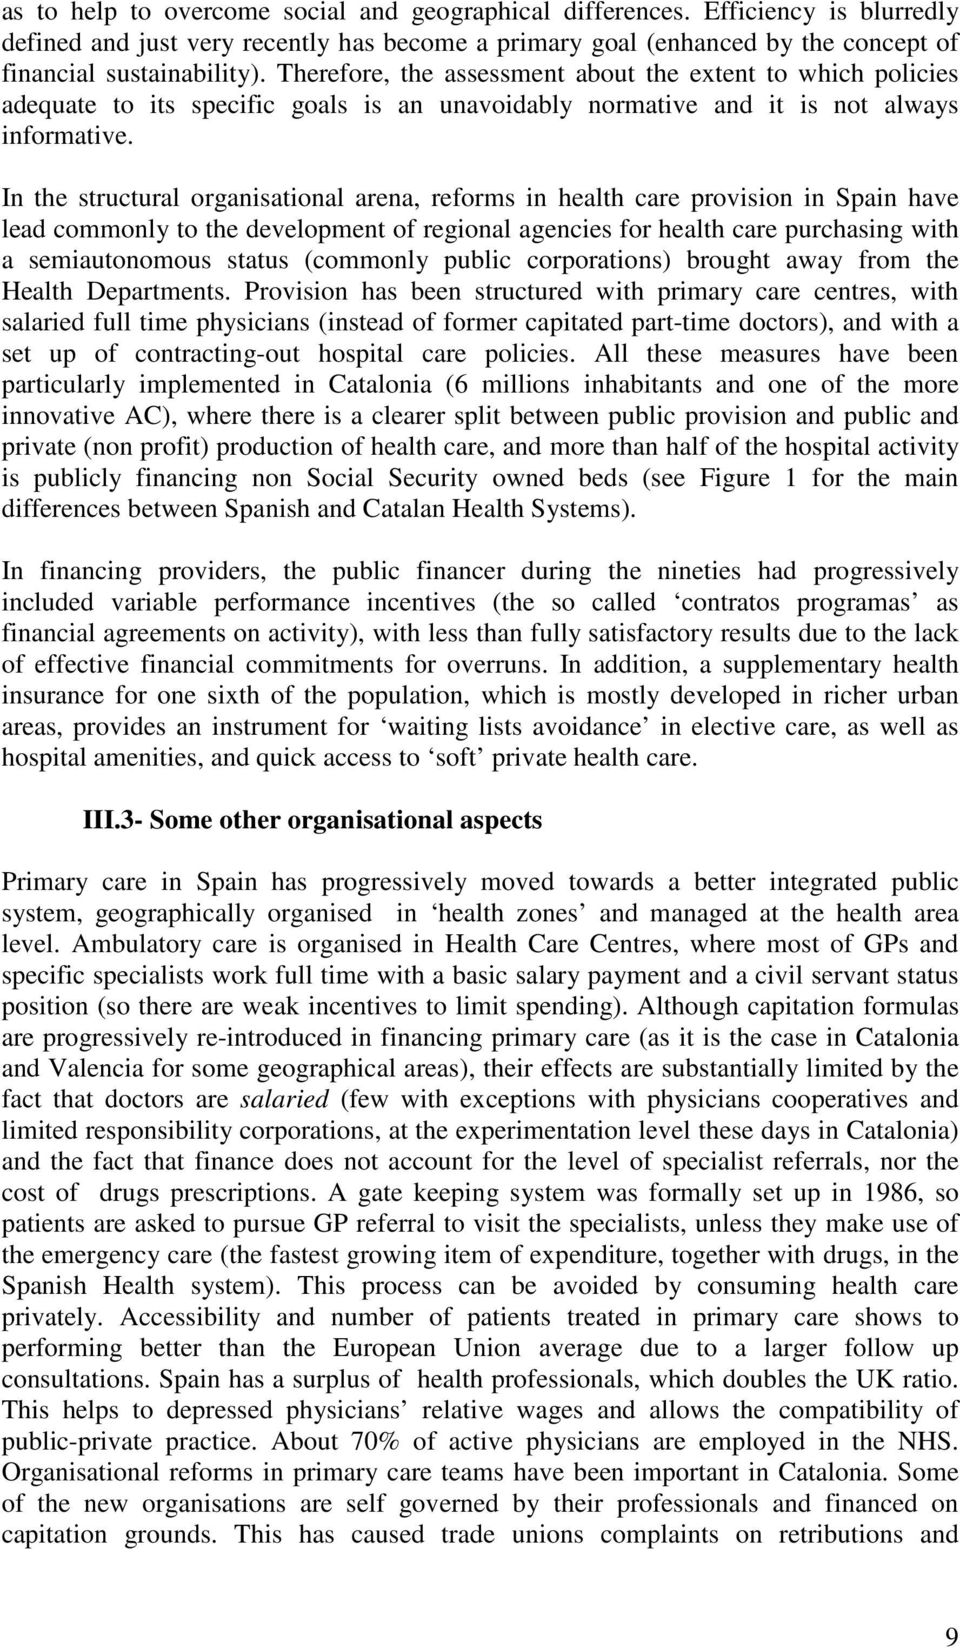 In the structural organisational arena, reforms in health care provision in Spain have lead commonly to the development of regional agencies for health care purchasing with a semiautonomous status